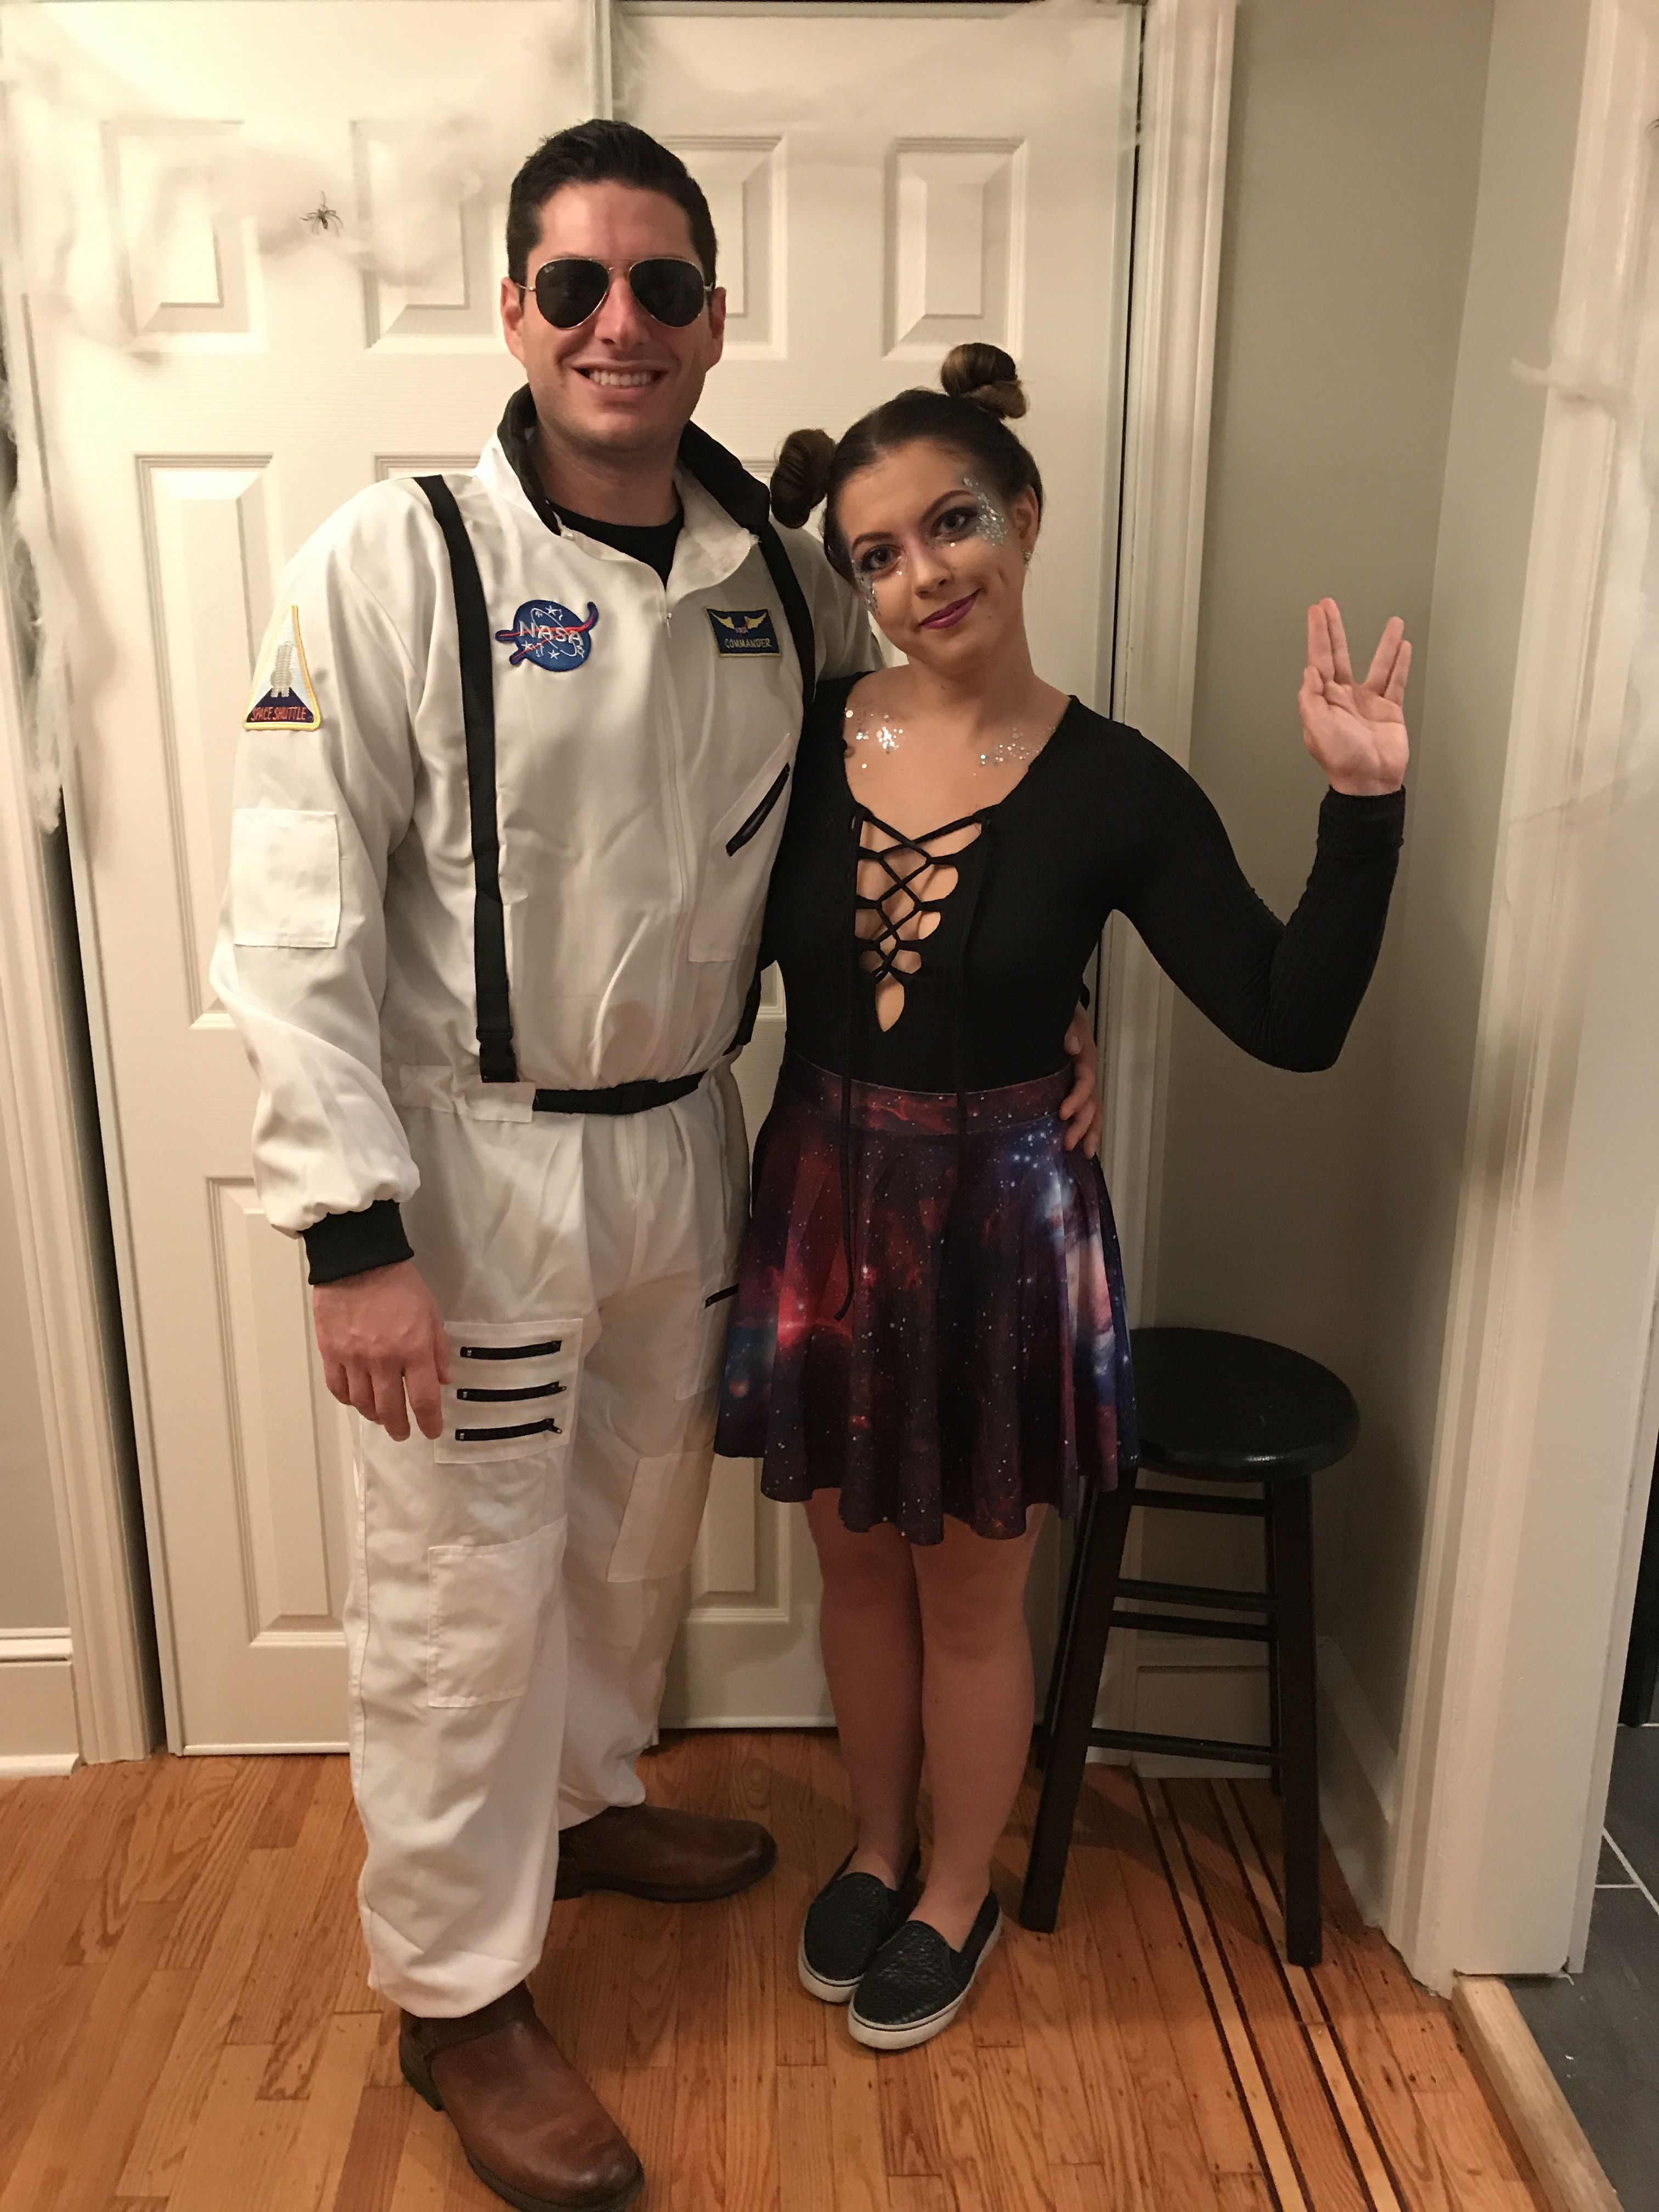 Alien and astronaut couple costume   Cute couples costumes ...